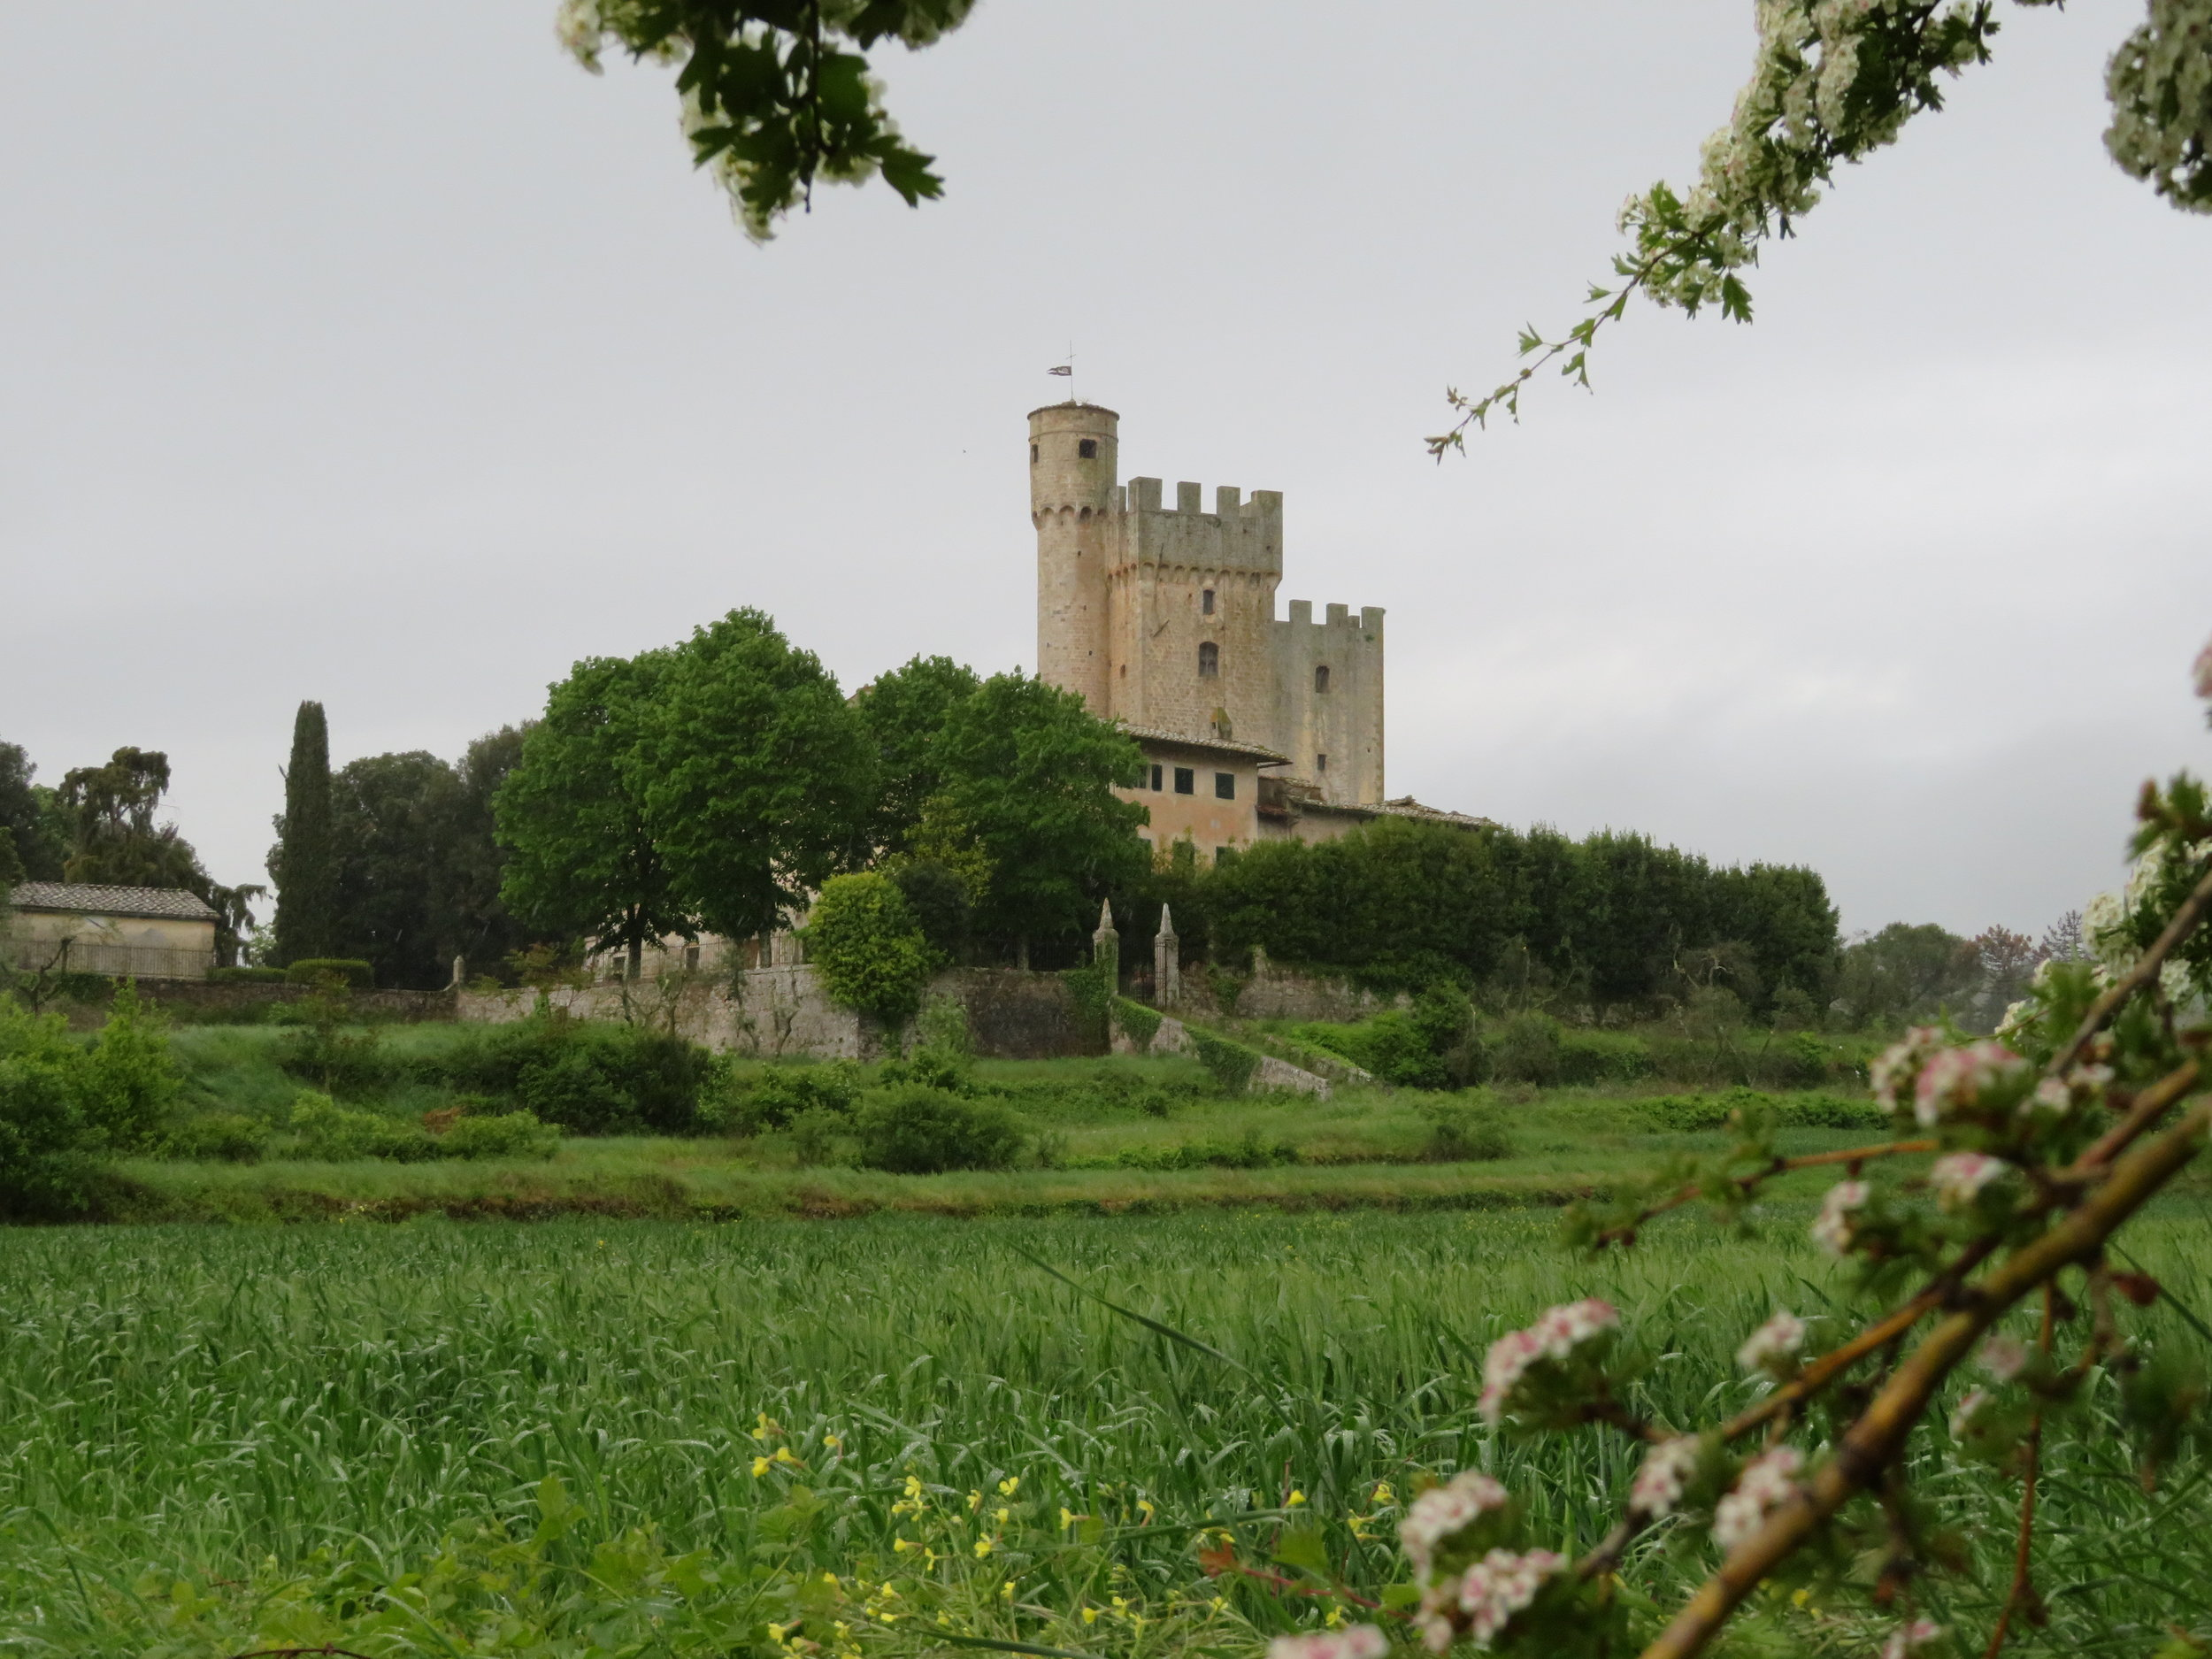 Just down the road from La Villa, we came across Castello della Chiocciola. Even in the rain, it was a beautiful sight to behold.